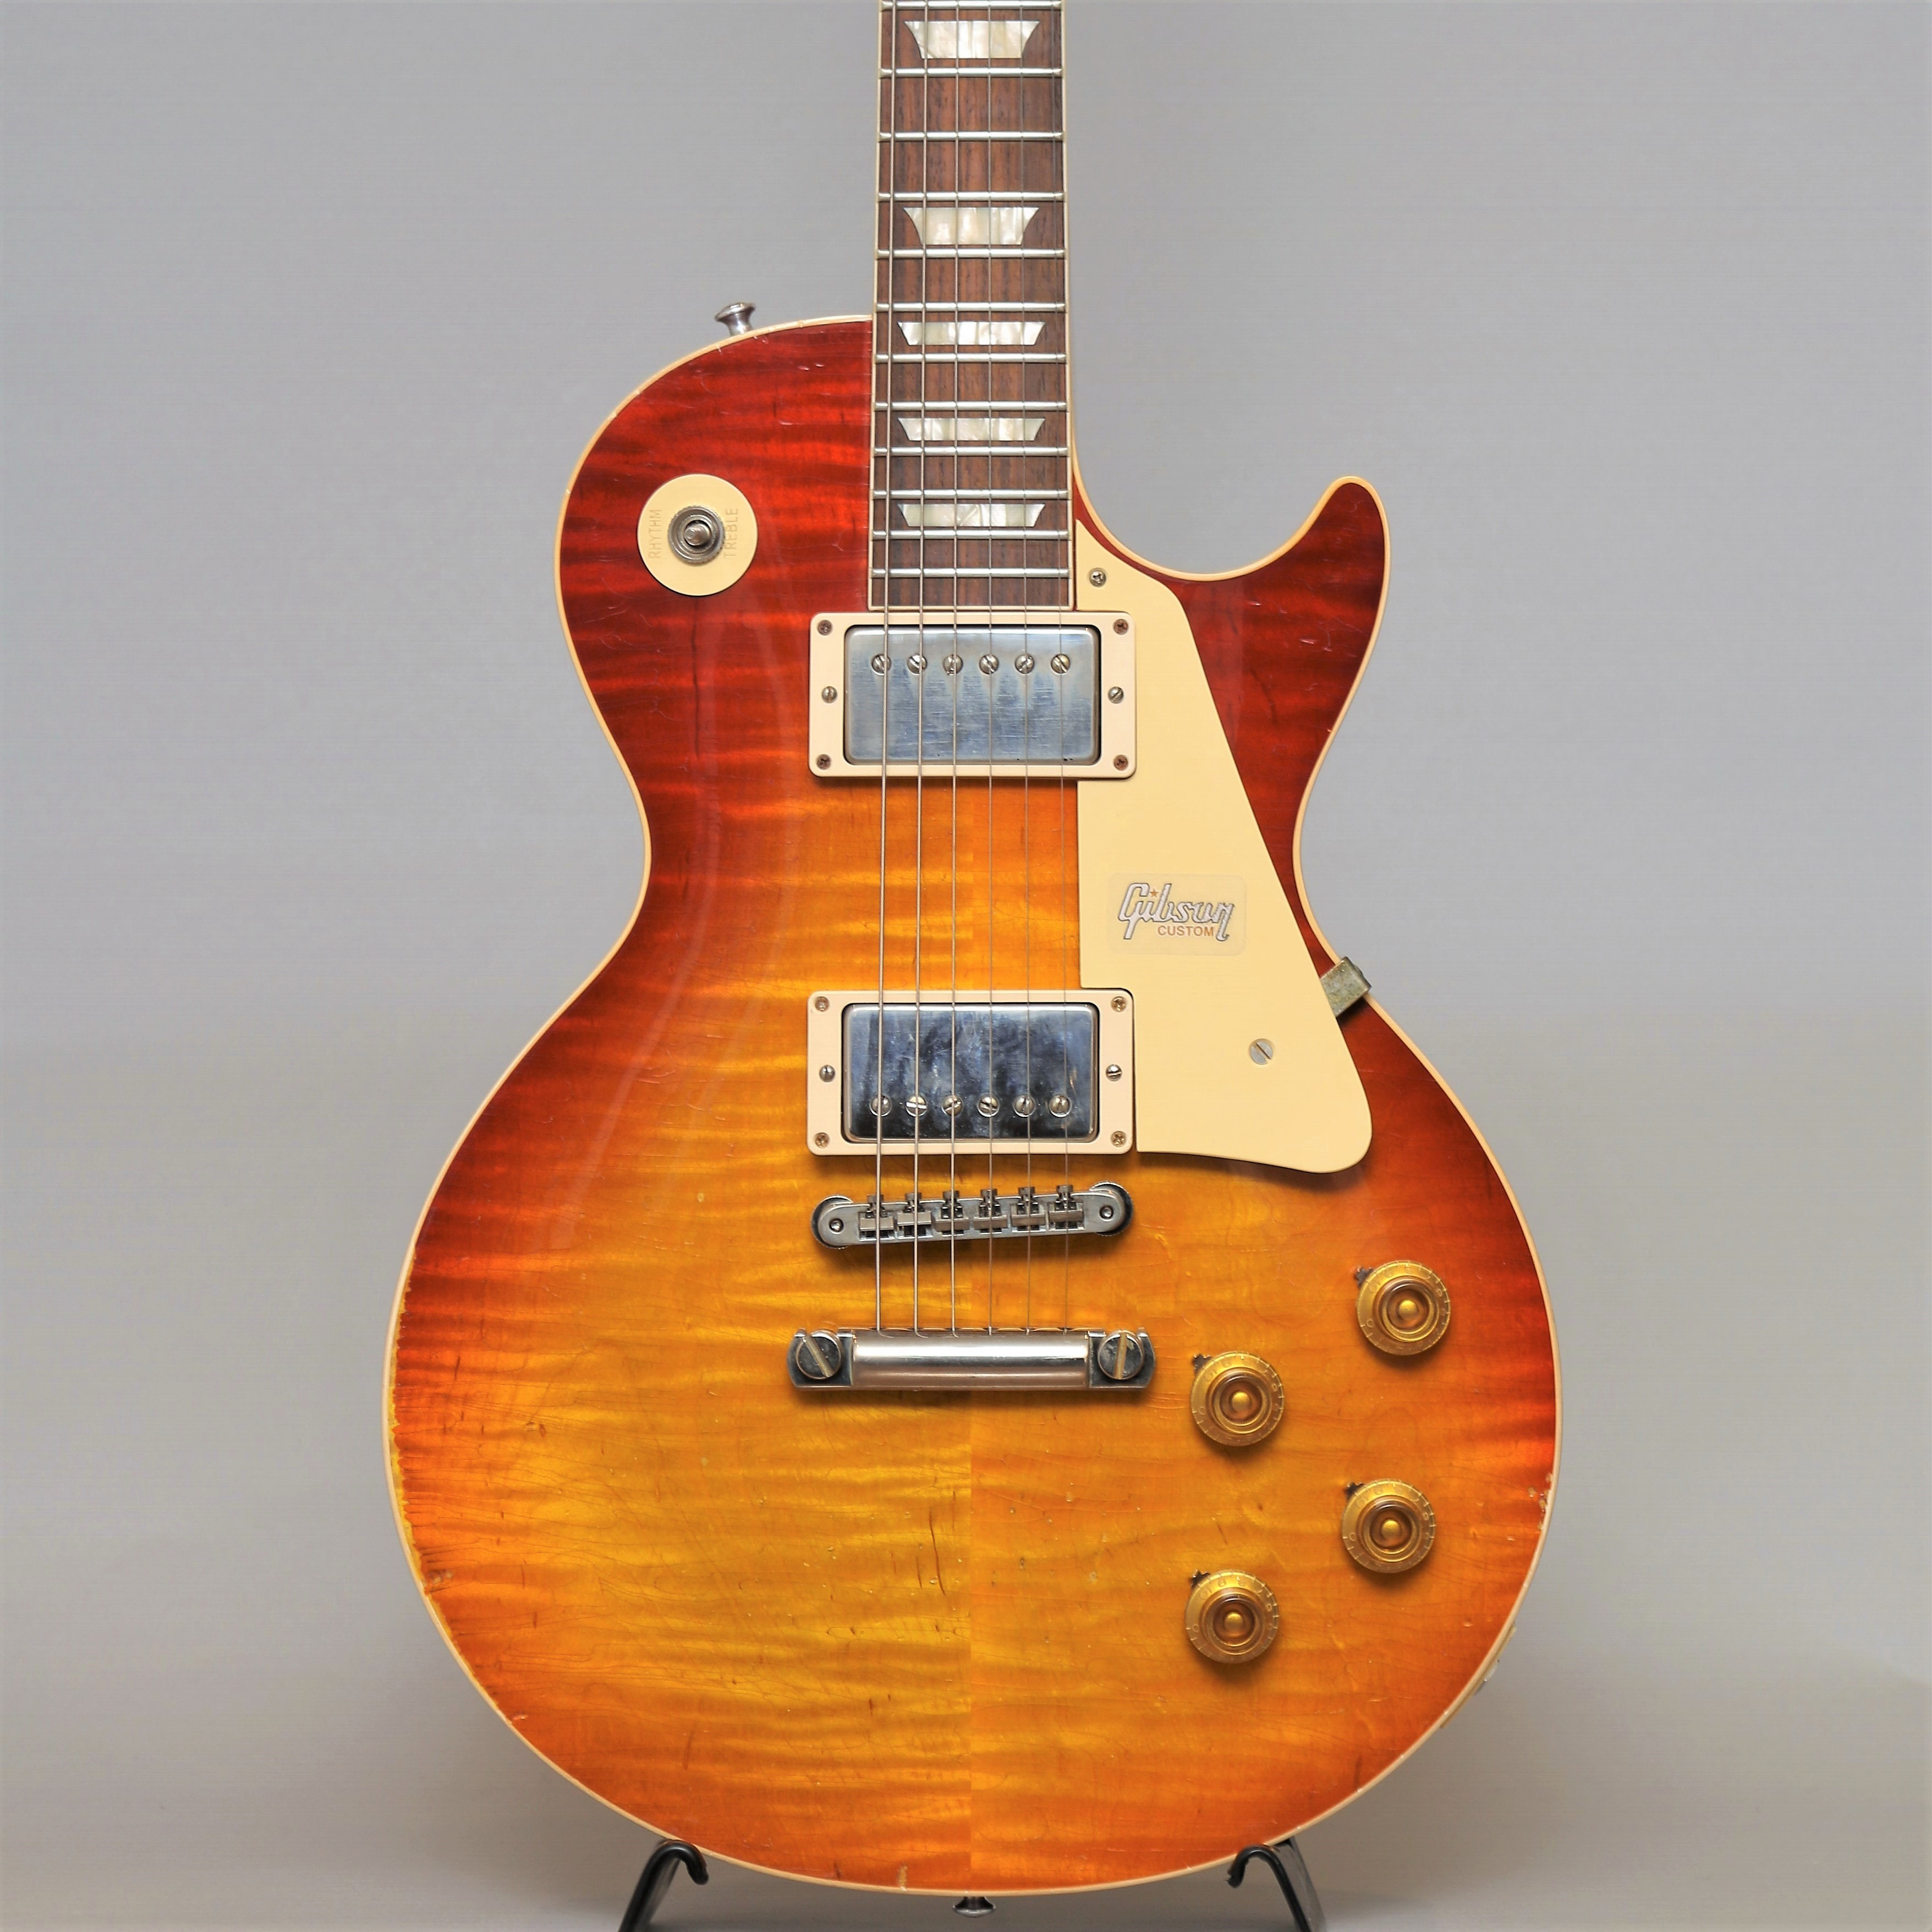 60th Anniversary 1959 Les Paul Standard Orange Sunset Fade Murphy Aged【S/N:992289】